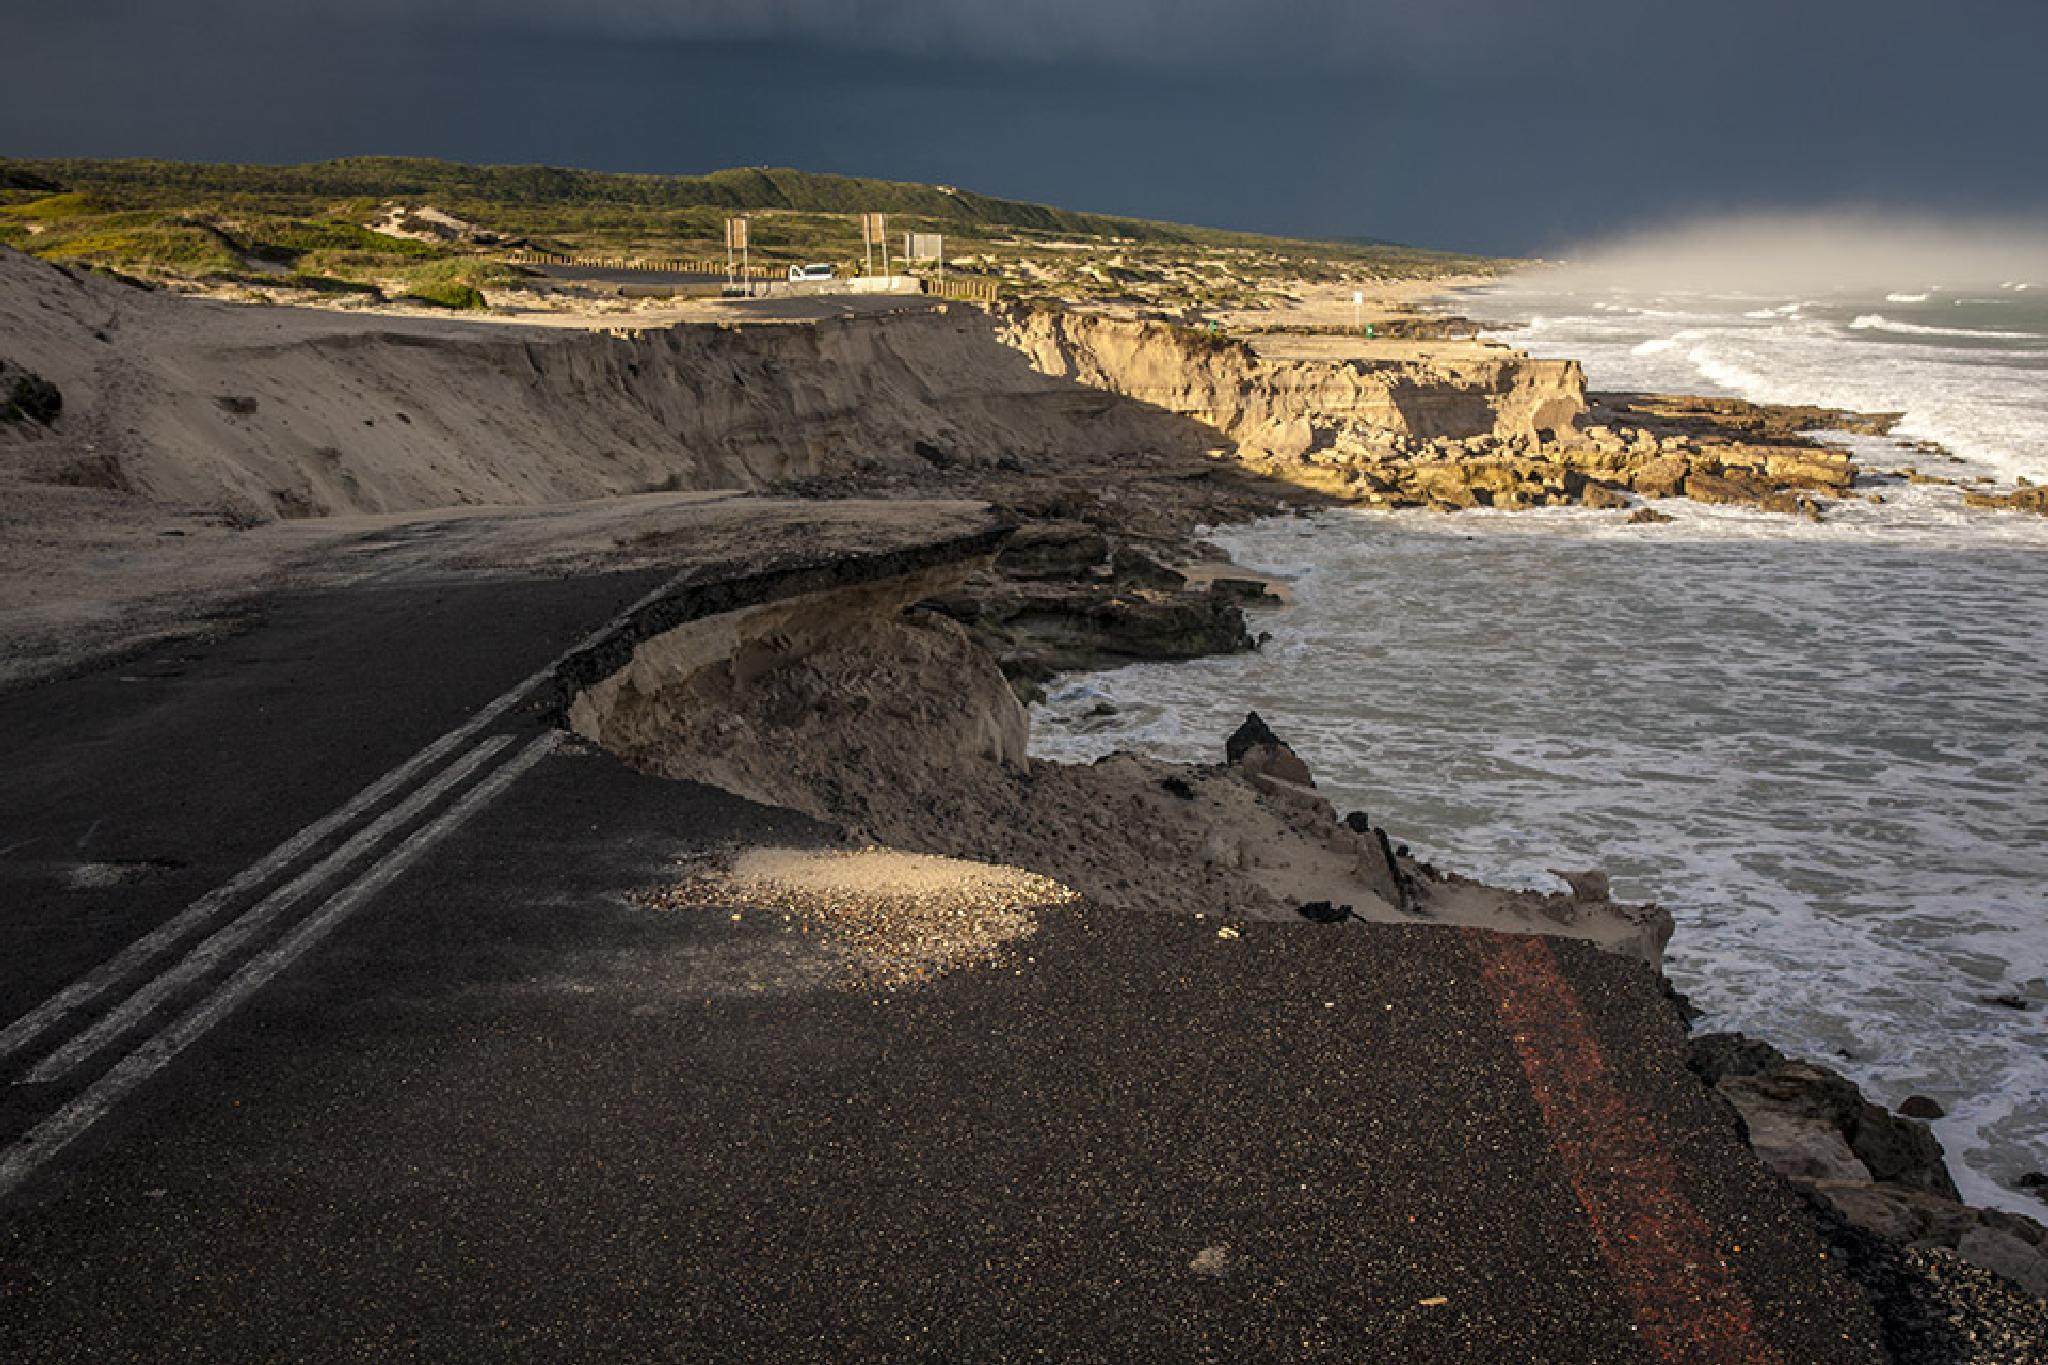 Stormy Seas by hassner